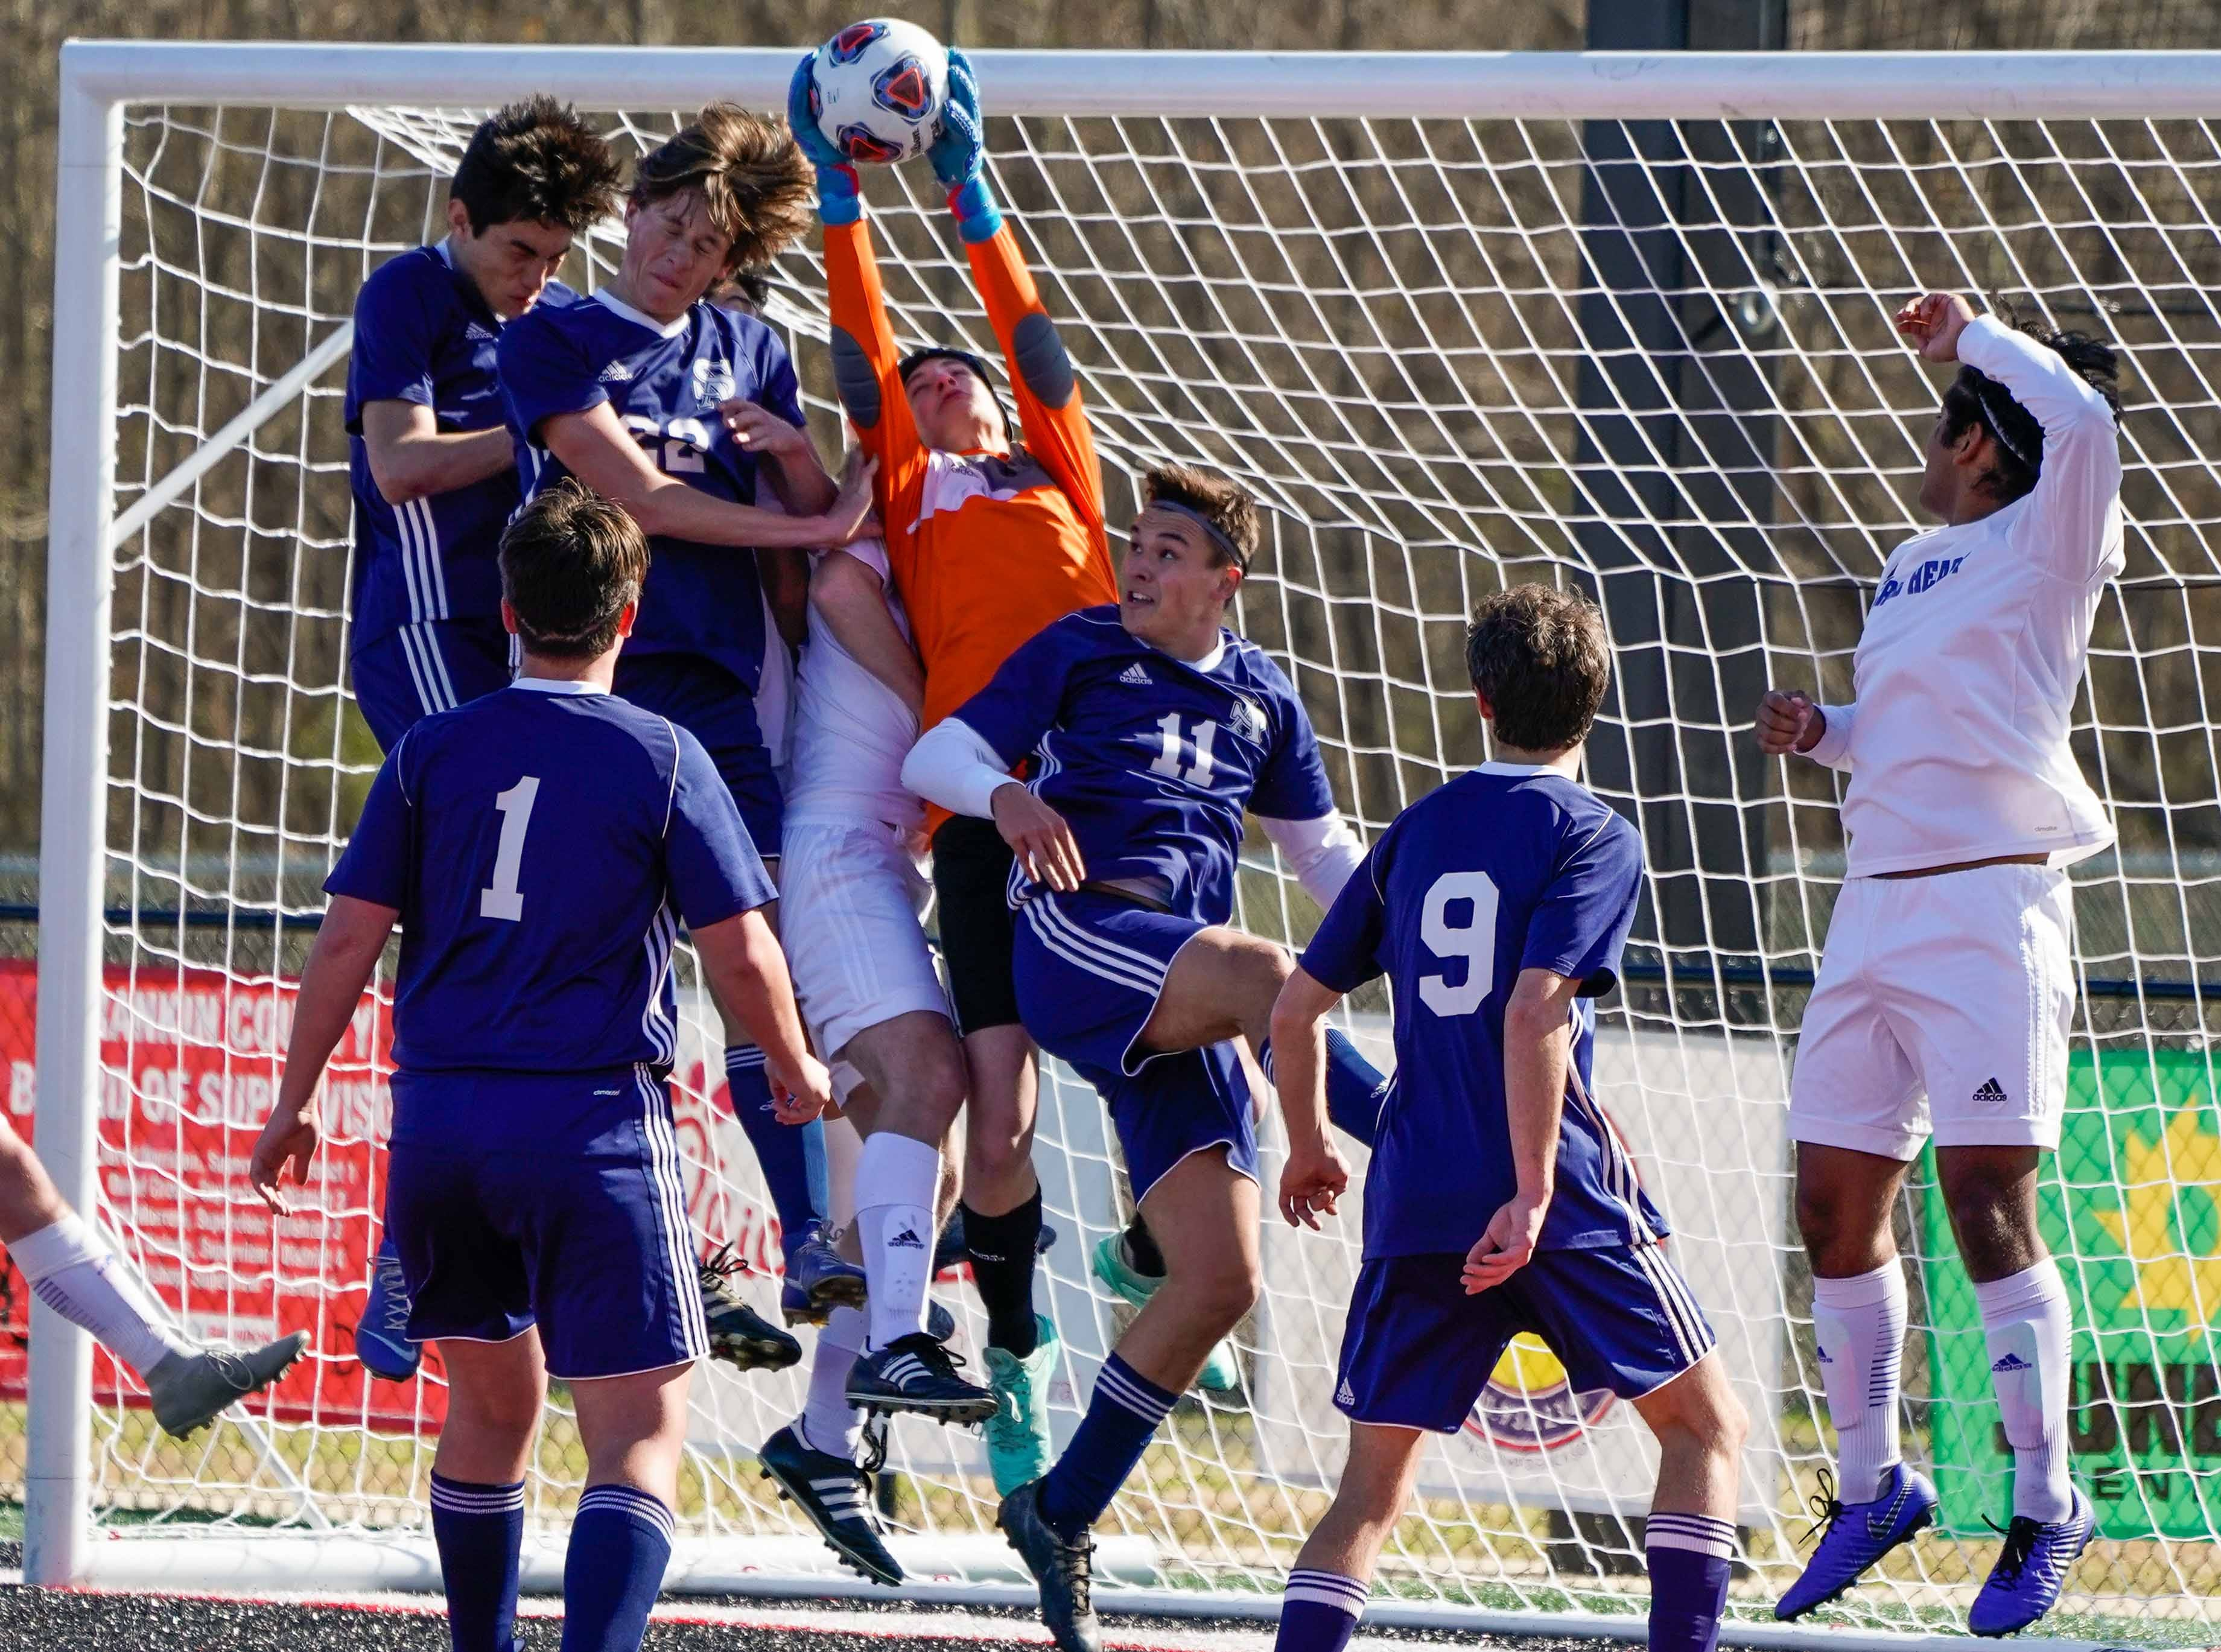 Sacred Heart keeper Jacob Painter saves a ball against a host of St Andrew's players during the MHSAA 1A,2A,3A  Boys Soccer Championships held at Brandon High School in Brandon, MS, Saturday February 9, 2019.(Bob Smith-For The Clarion Ledger)